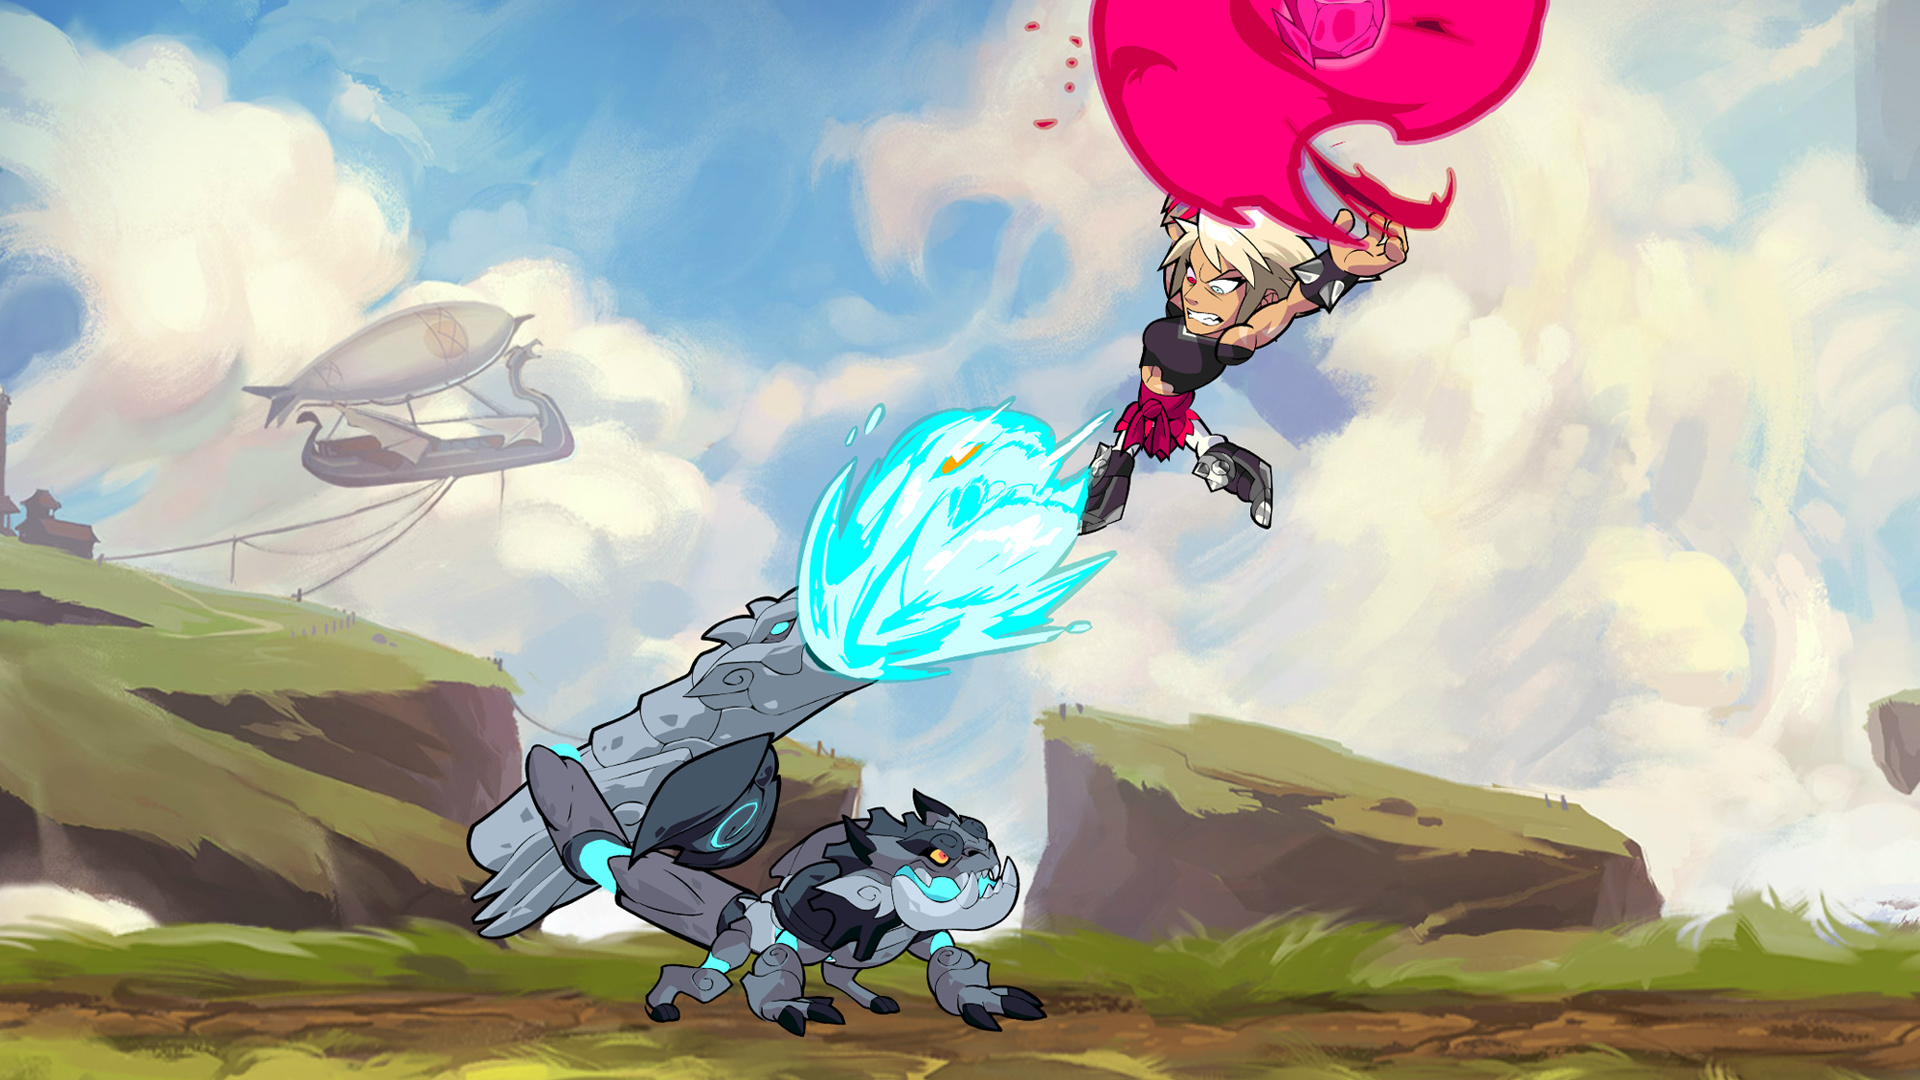 Free Online Platform Games No Download play brawlhalla for free - now with cross-play on all platforms!